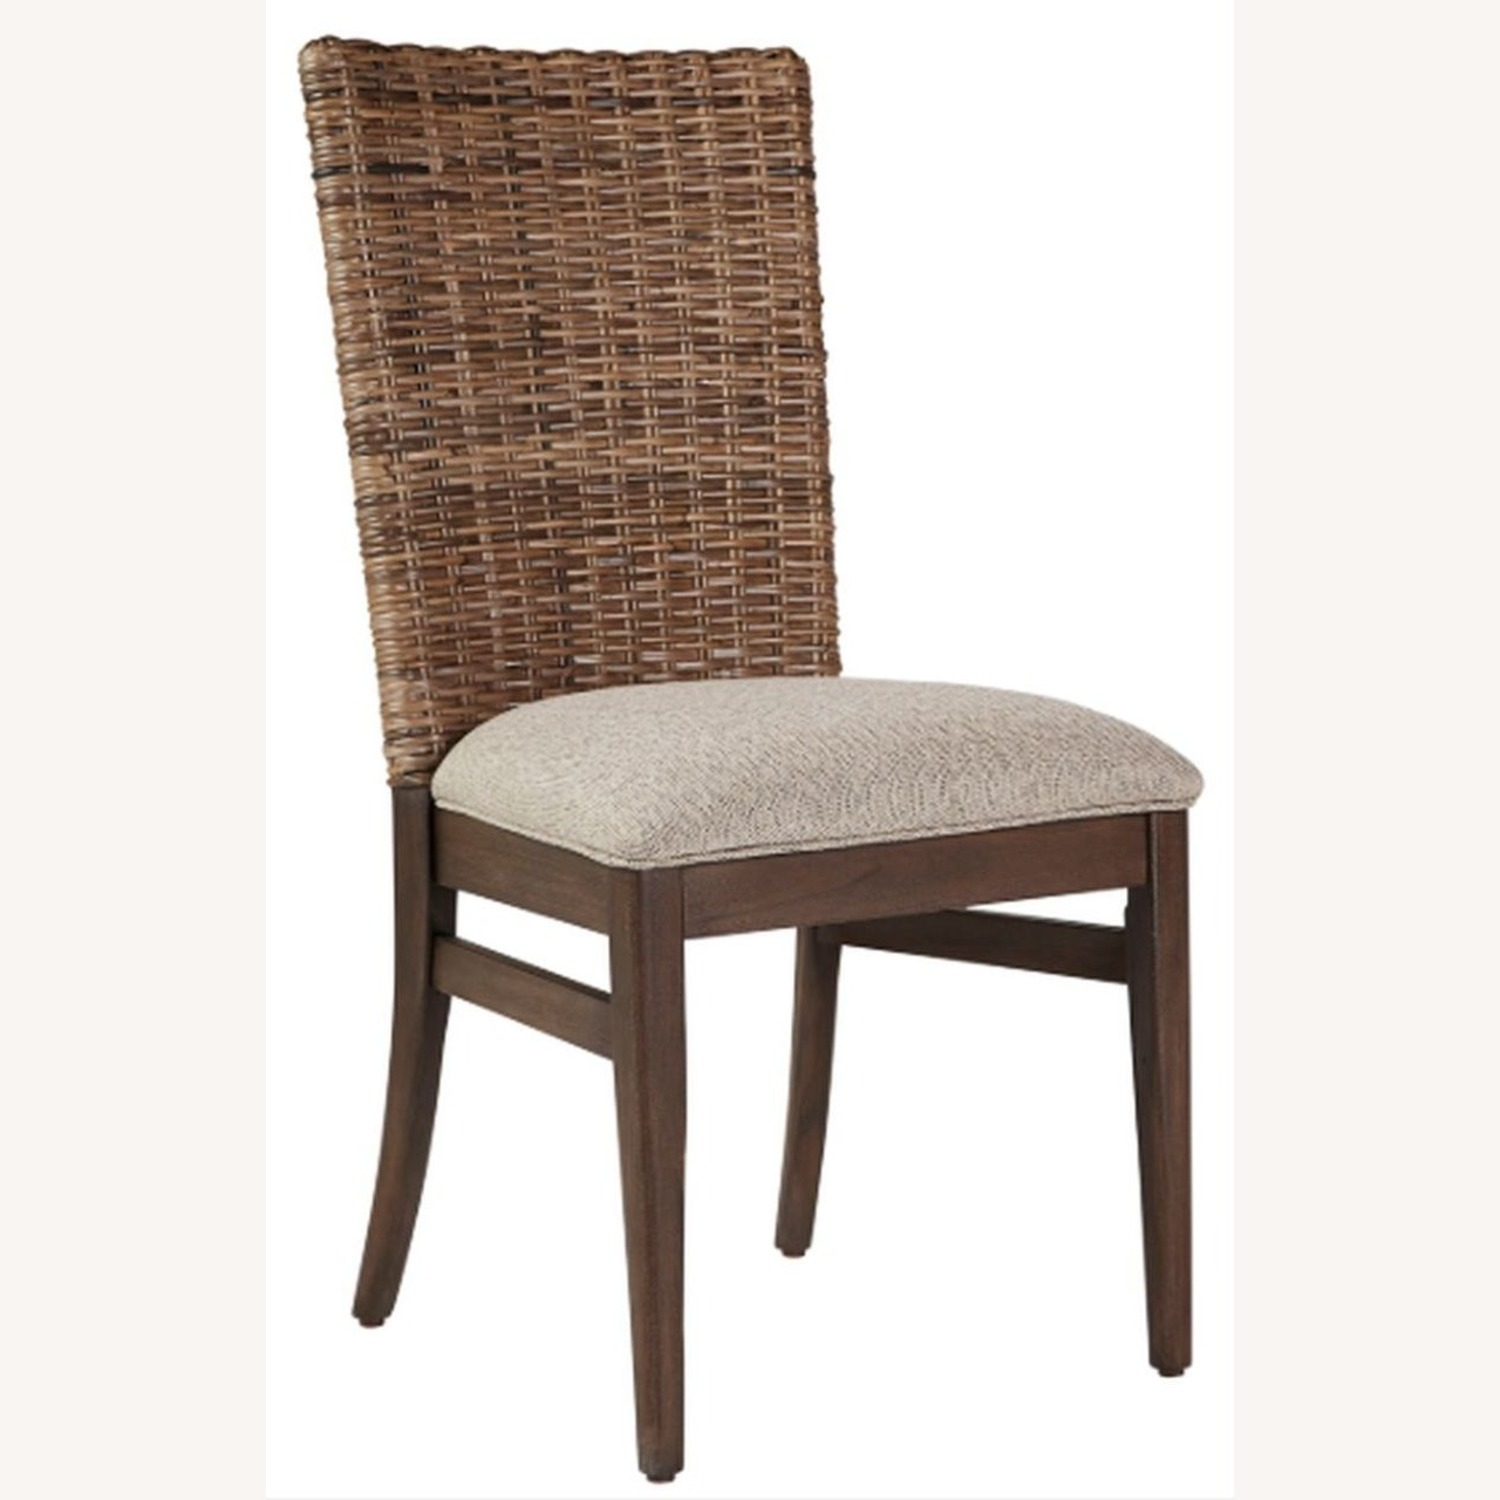 Modern Dining Chair Upholstered In Light Taupe - image-0